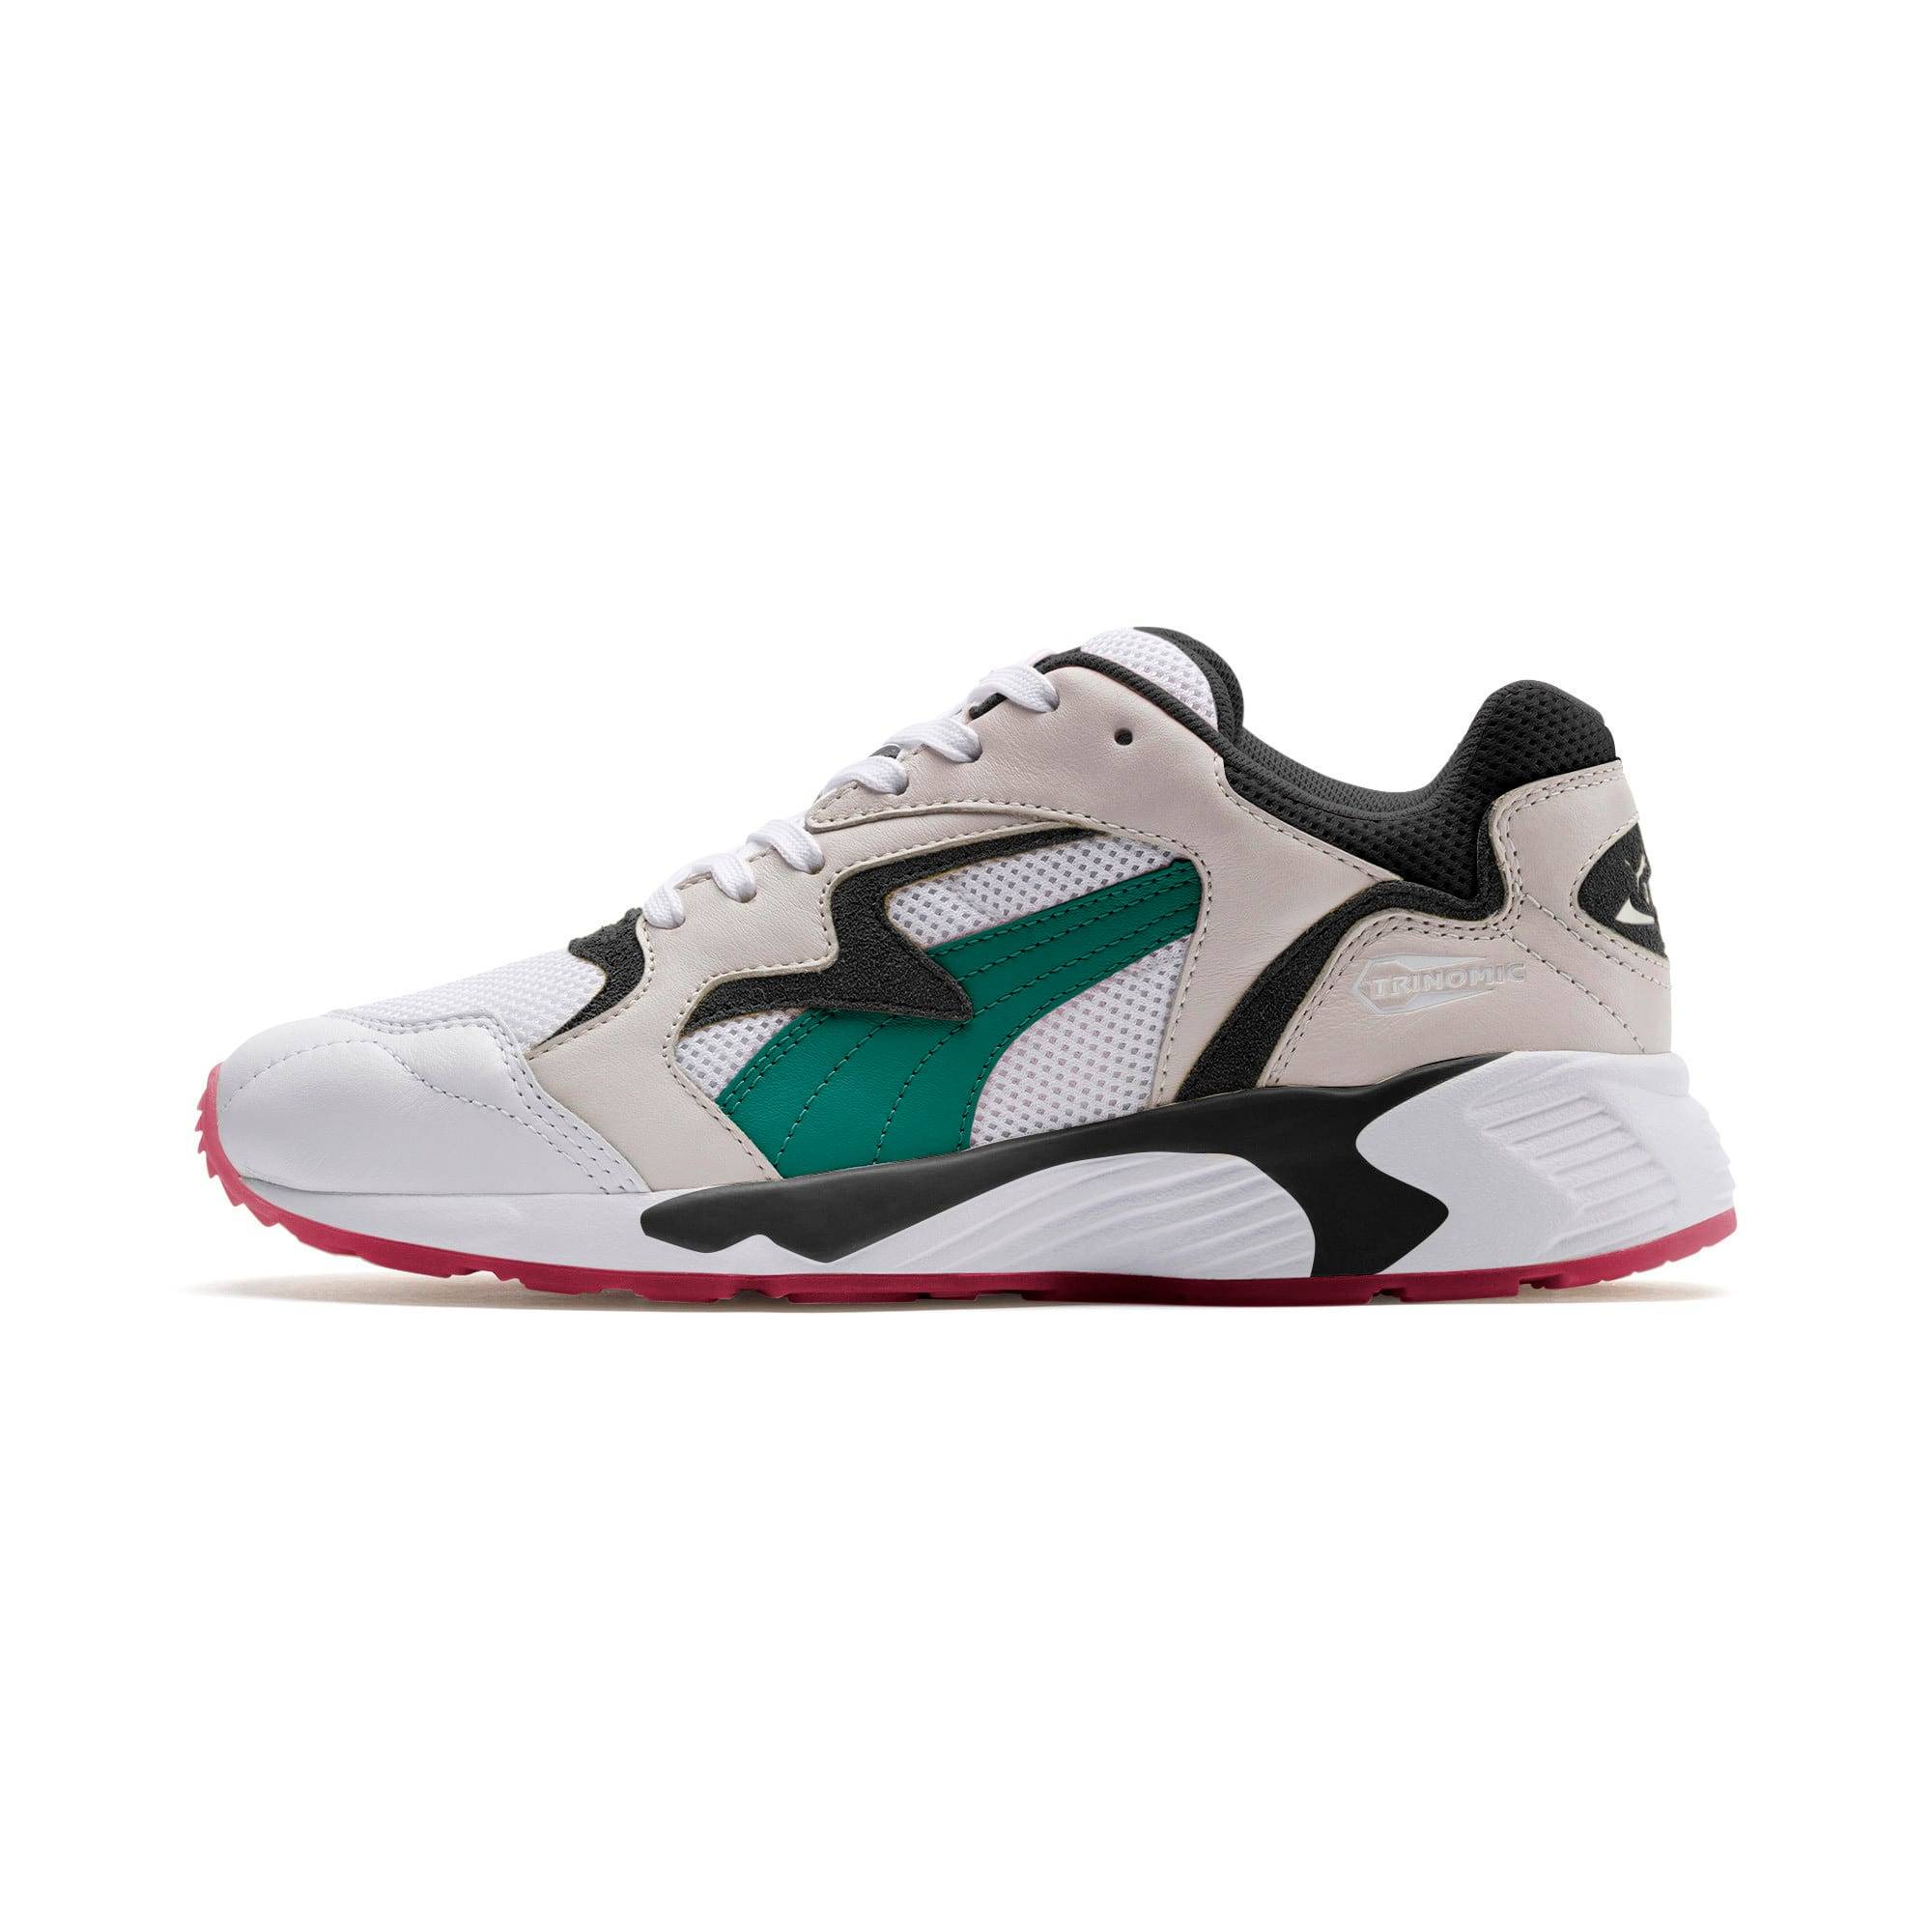 Thumbnail 1 of Prevail Classic Trainers, Puma White-Teal Green, medium